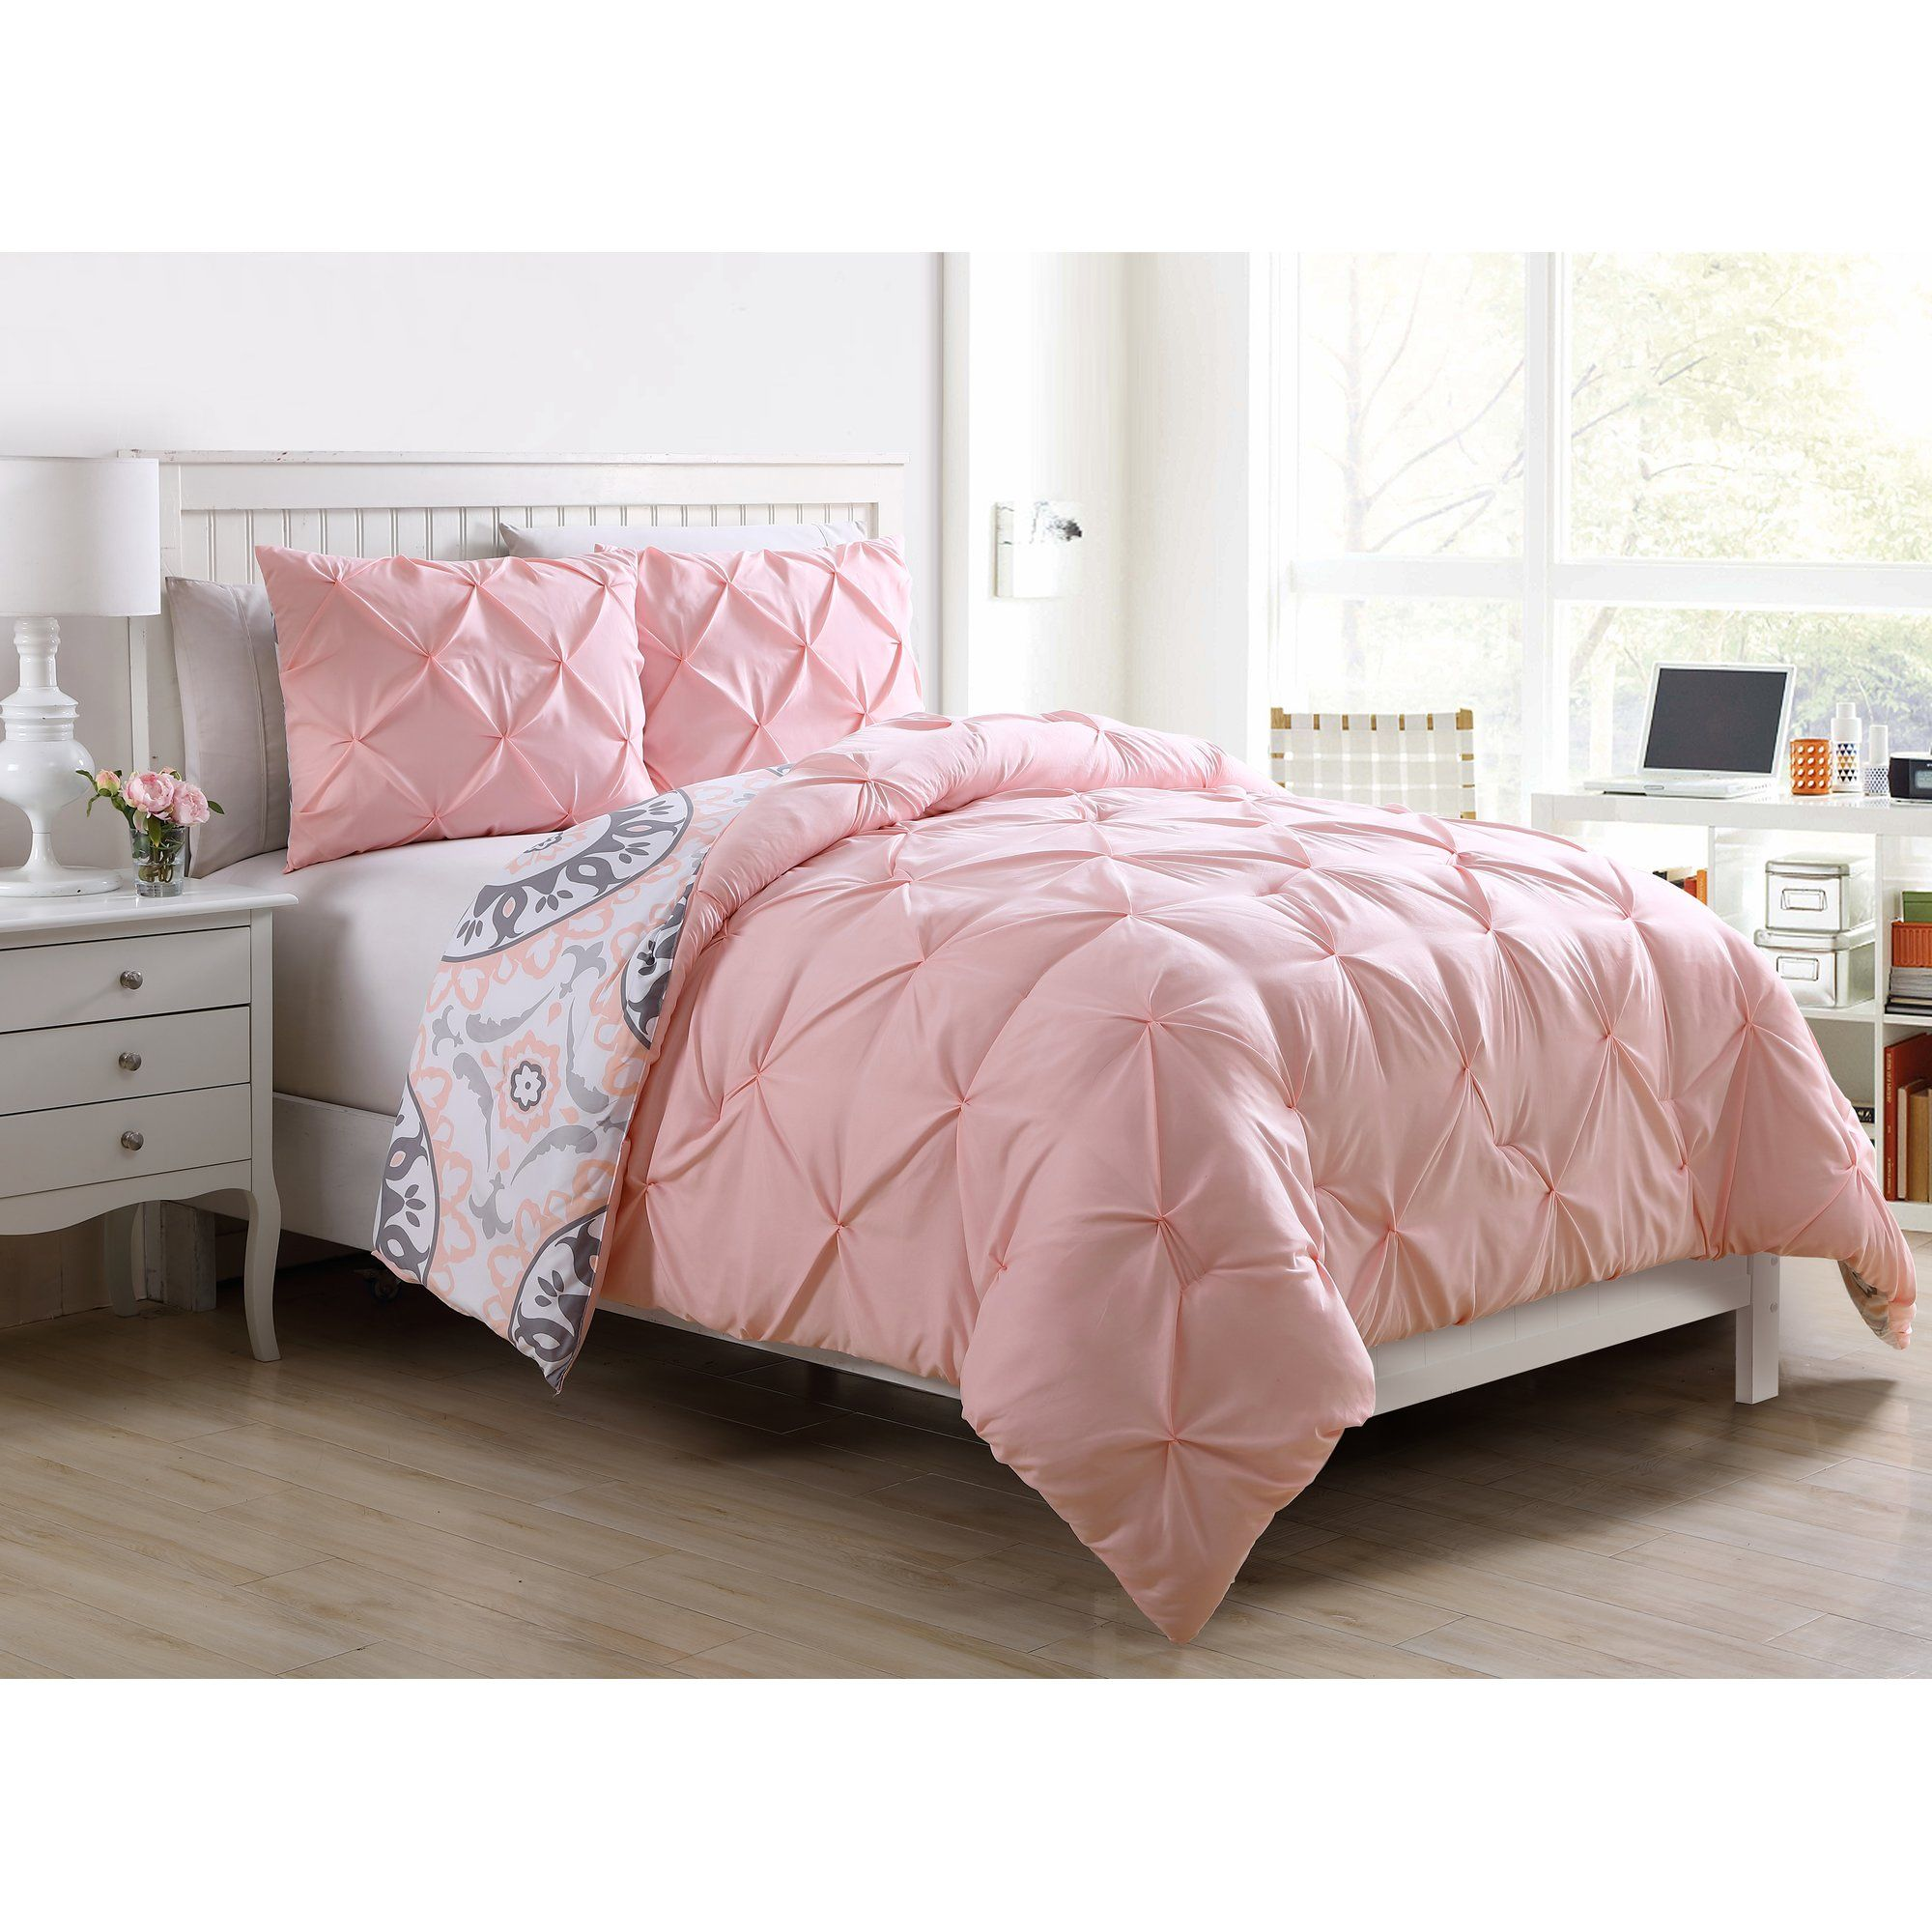 my cover twin girls comforter little itm ml new full kids pony reversible bedding